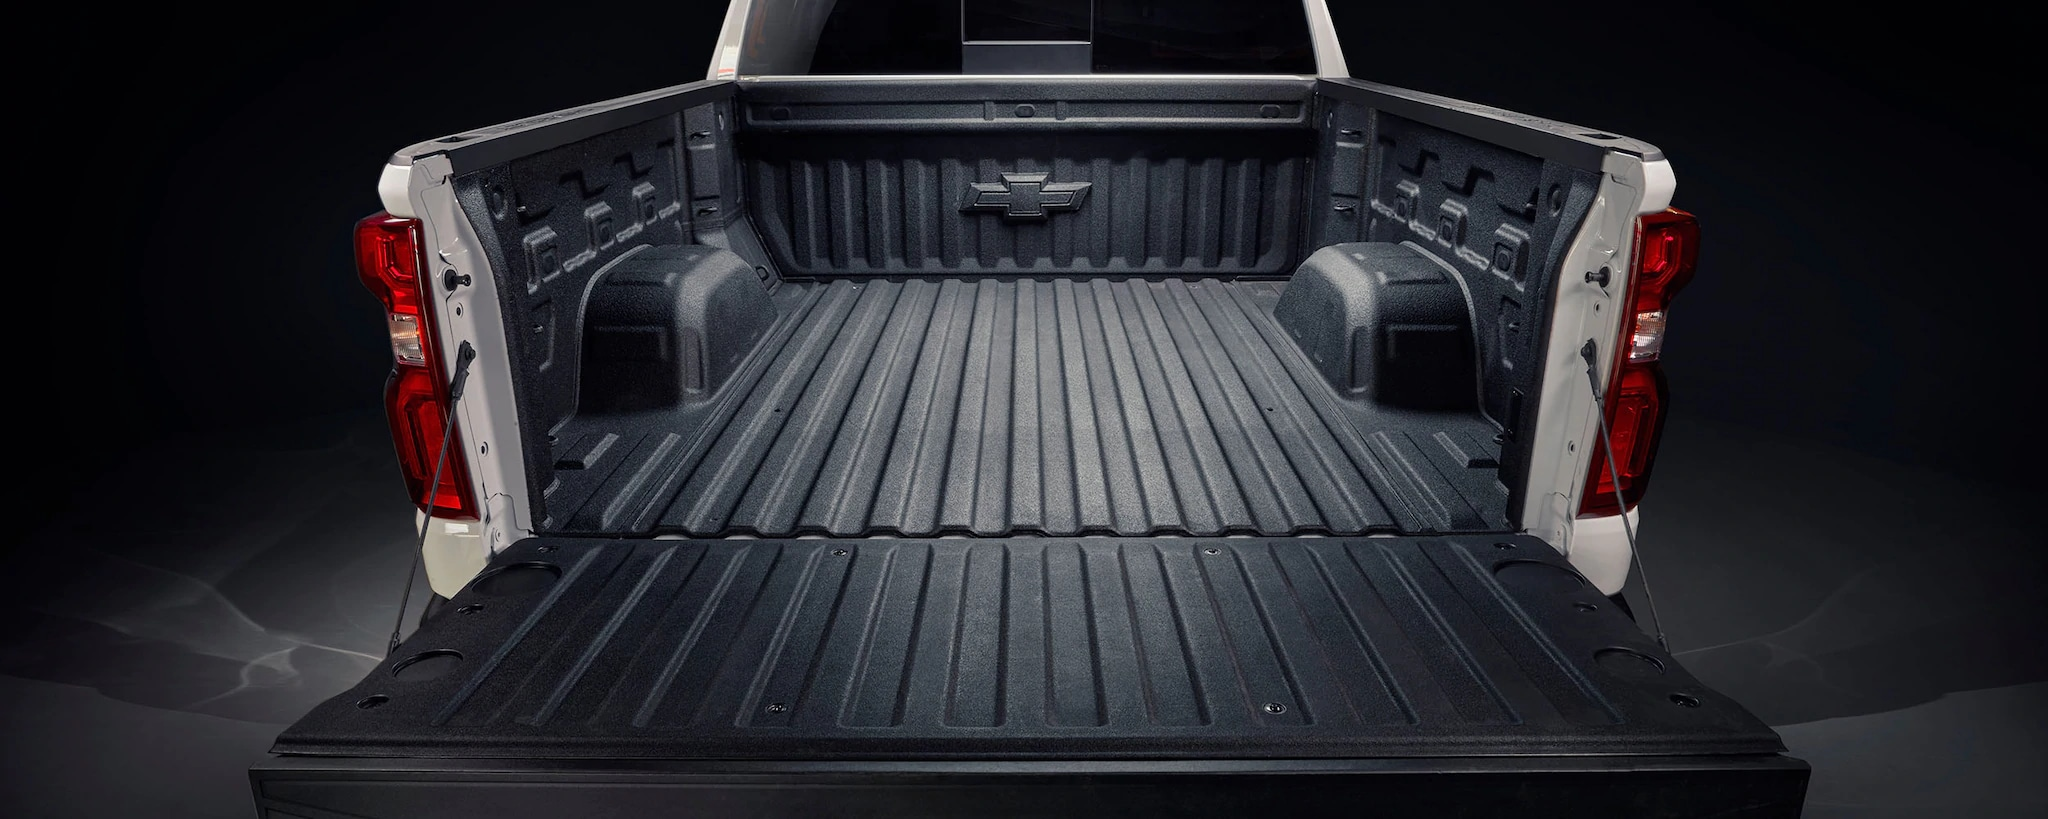 THE MOST FUNCTIONAL BED OF ANY PICKUP Image